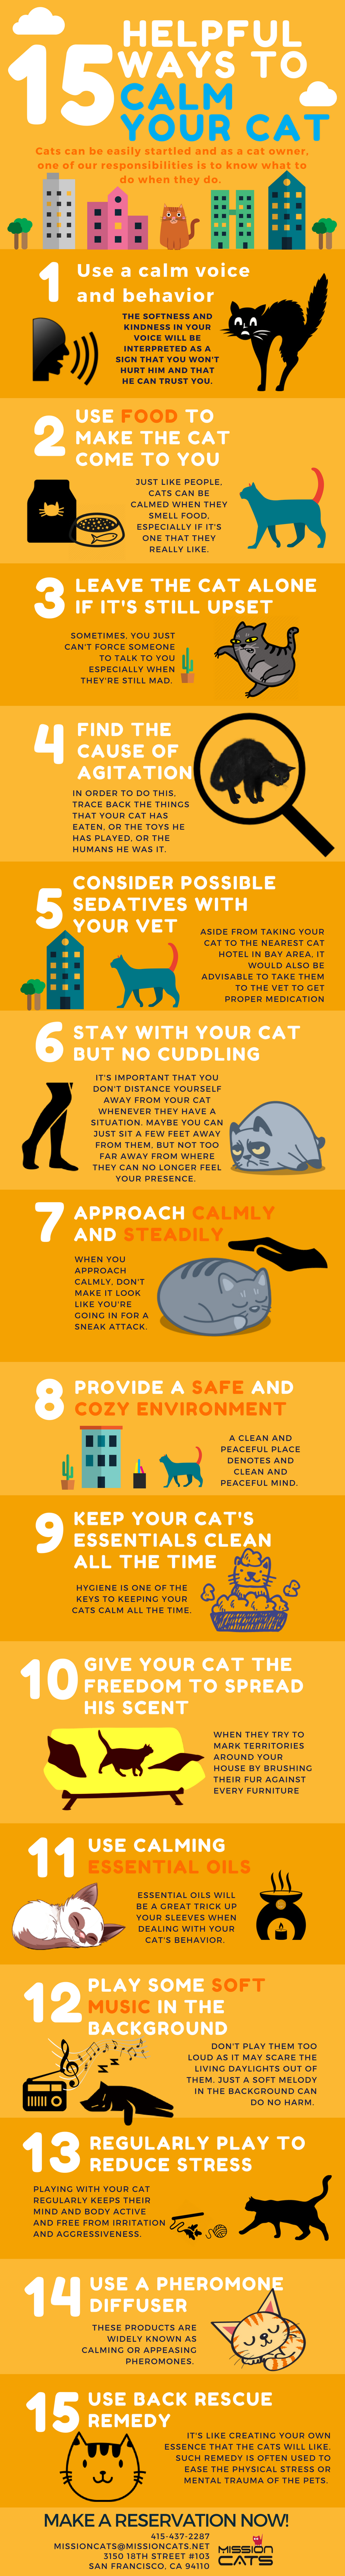 15 Helpful Ways to Calm Your Cat